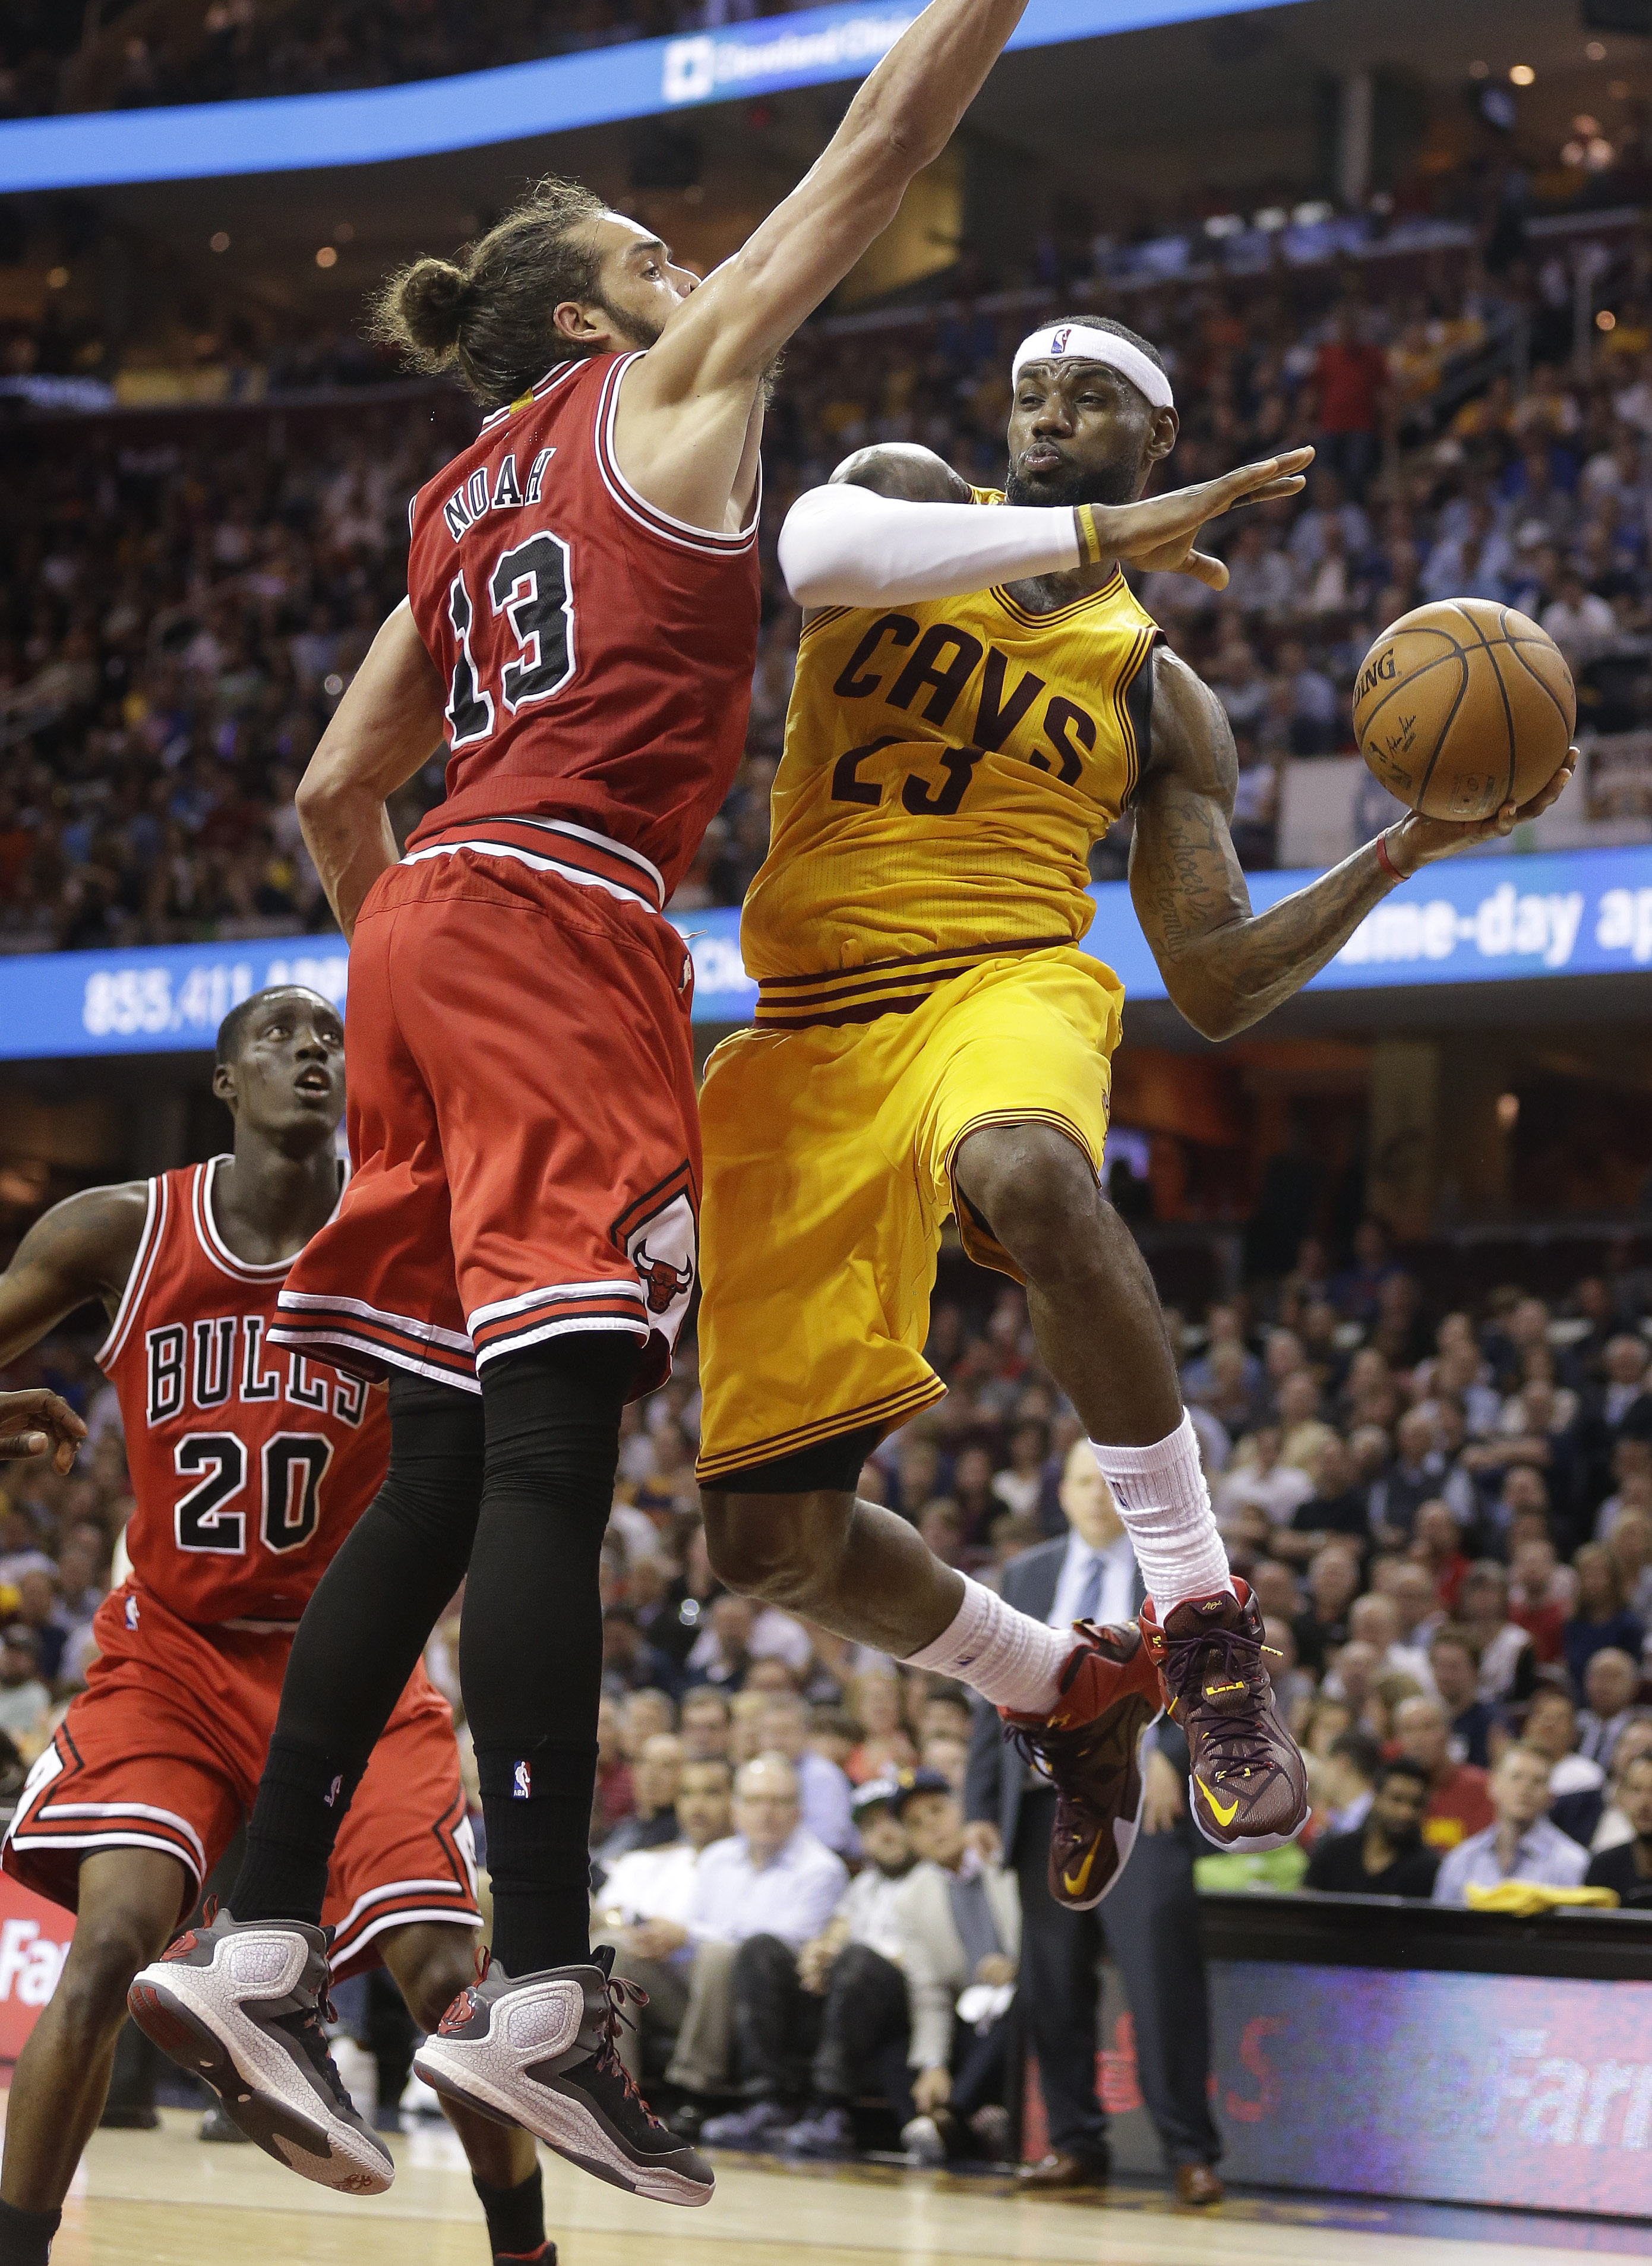 Vintage Lebron lifts Cavs past Bulls